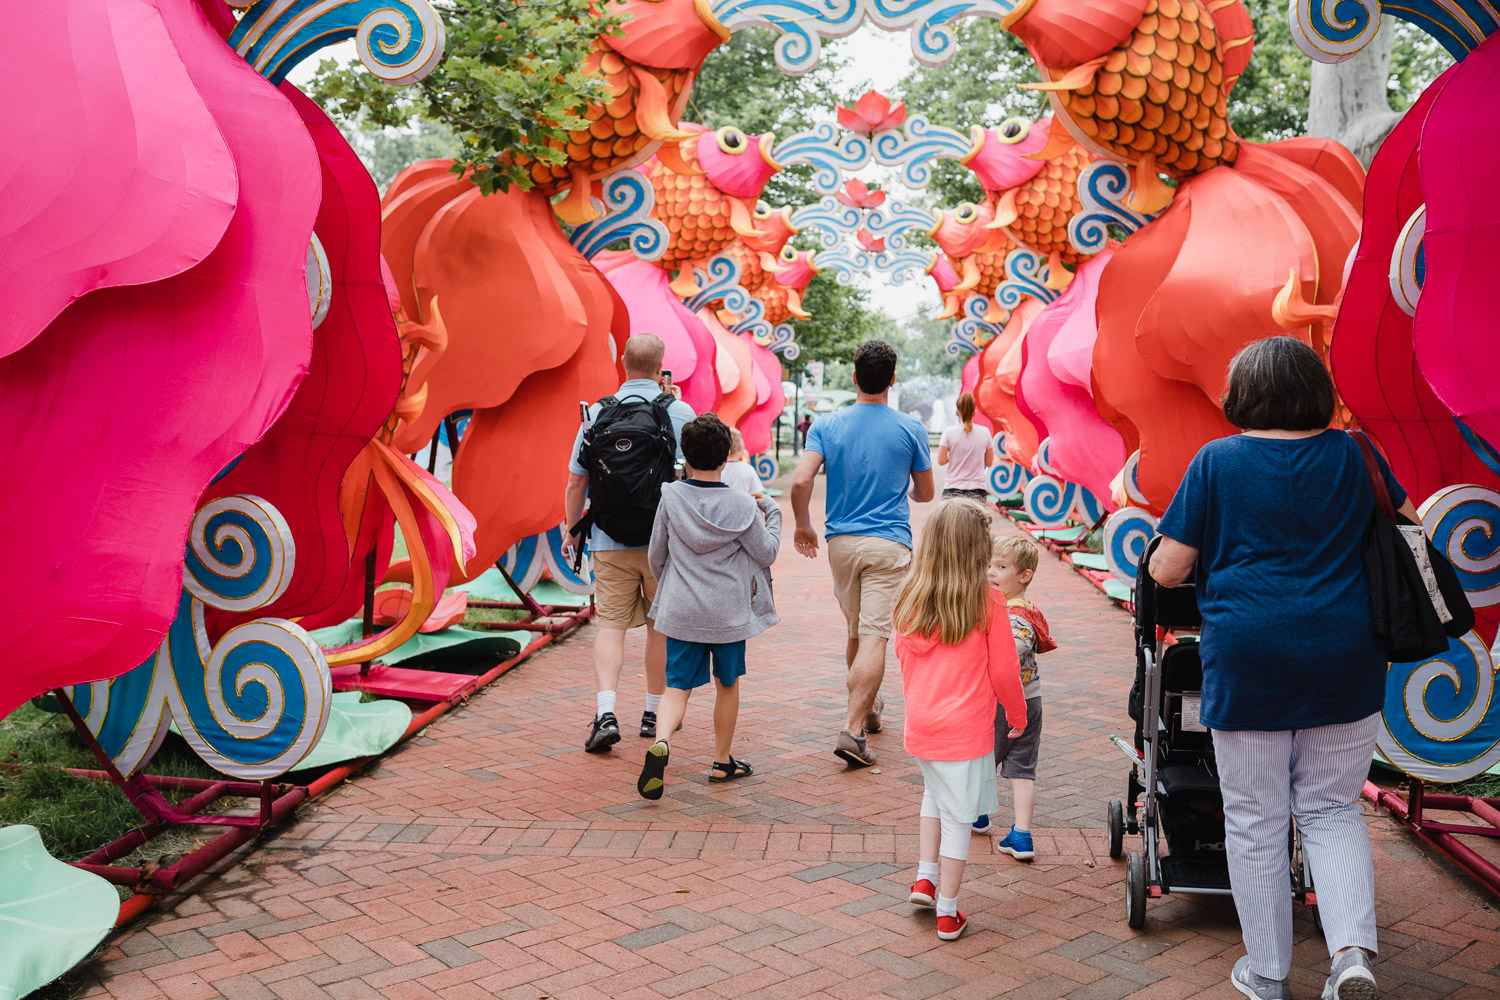 Family members walk through chinese lanterns in a Philadelphia park.